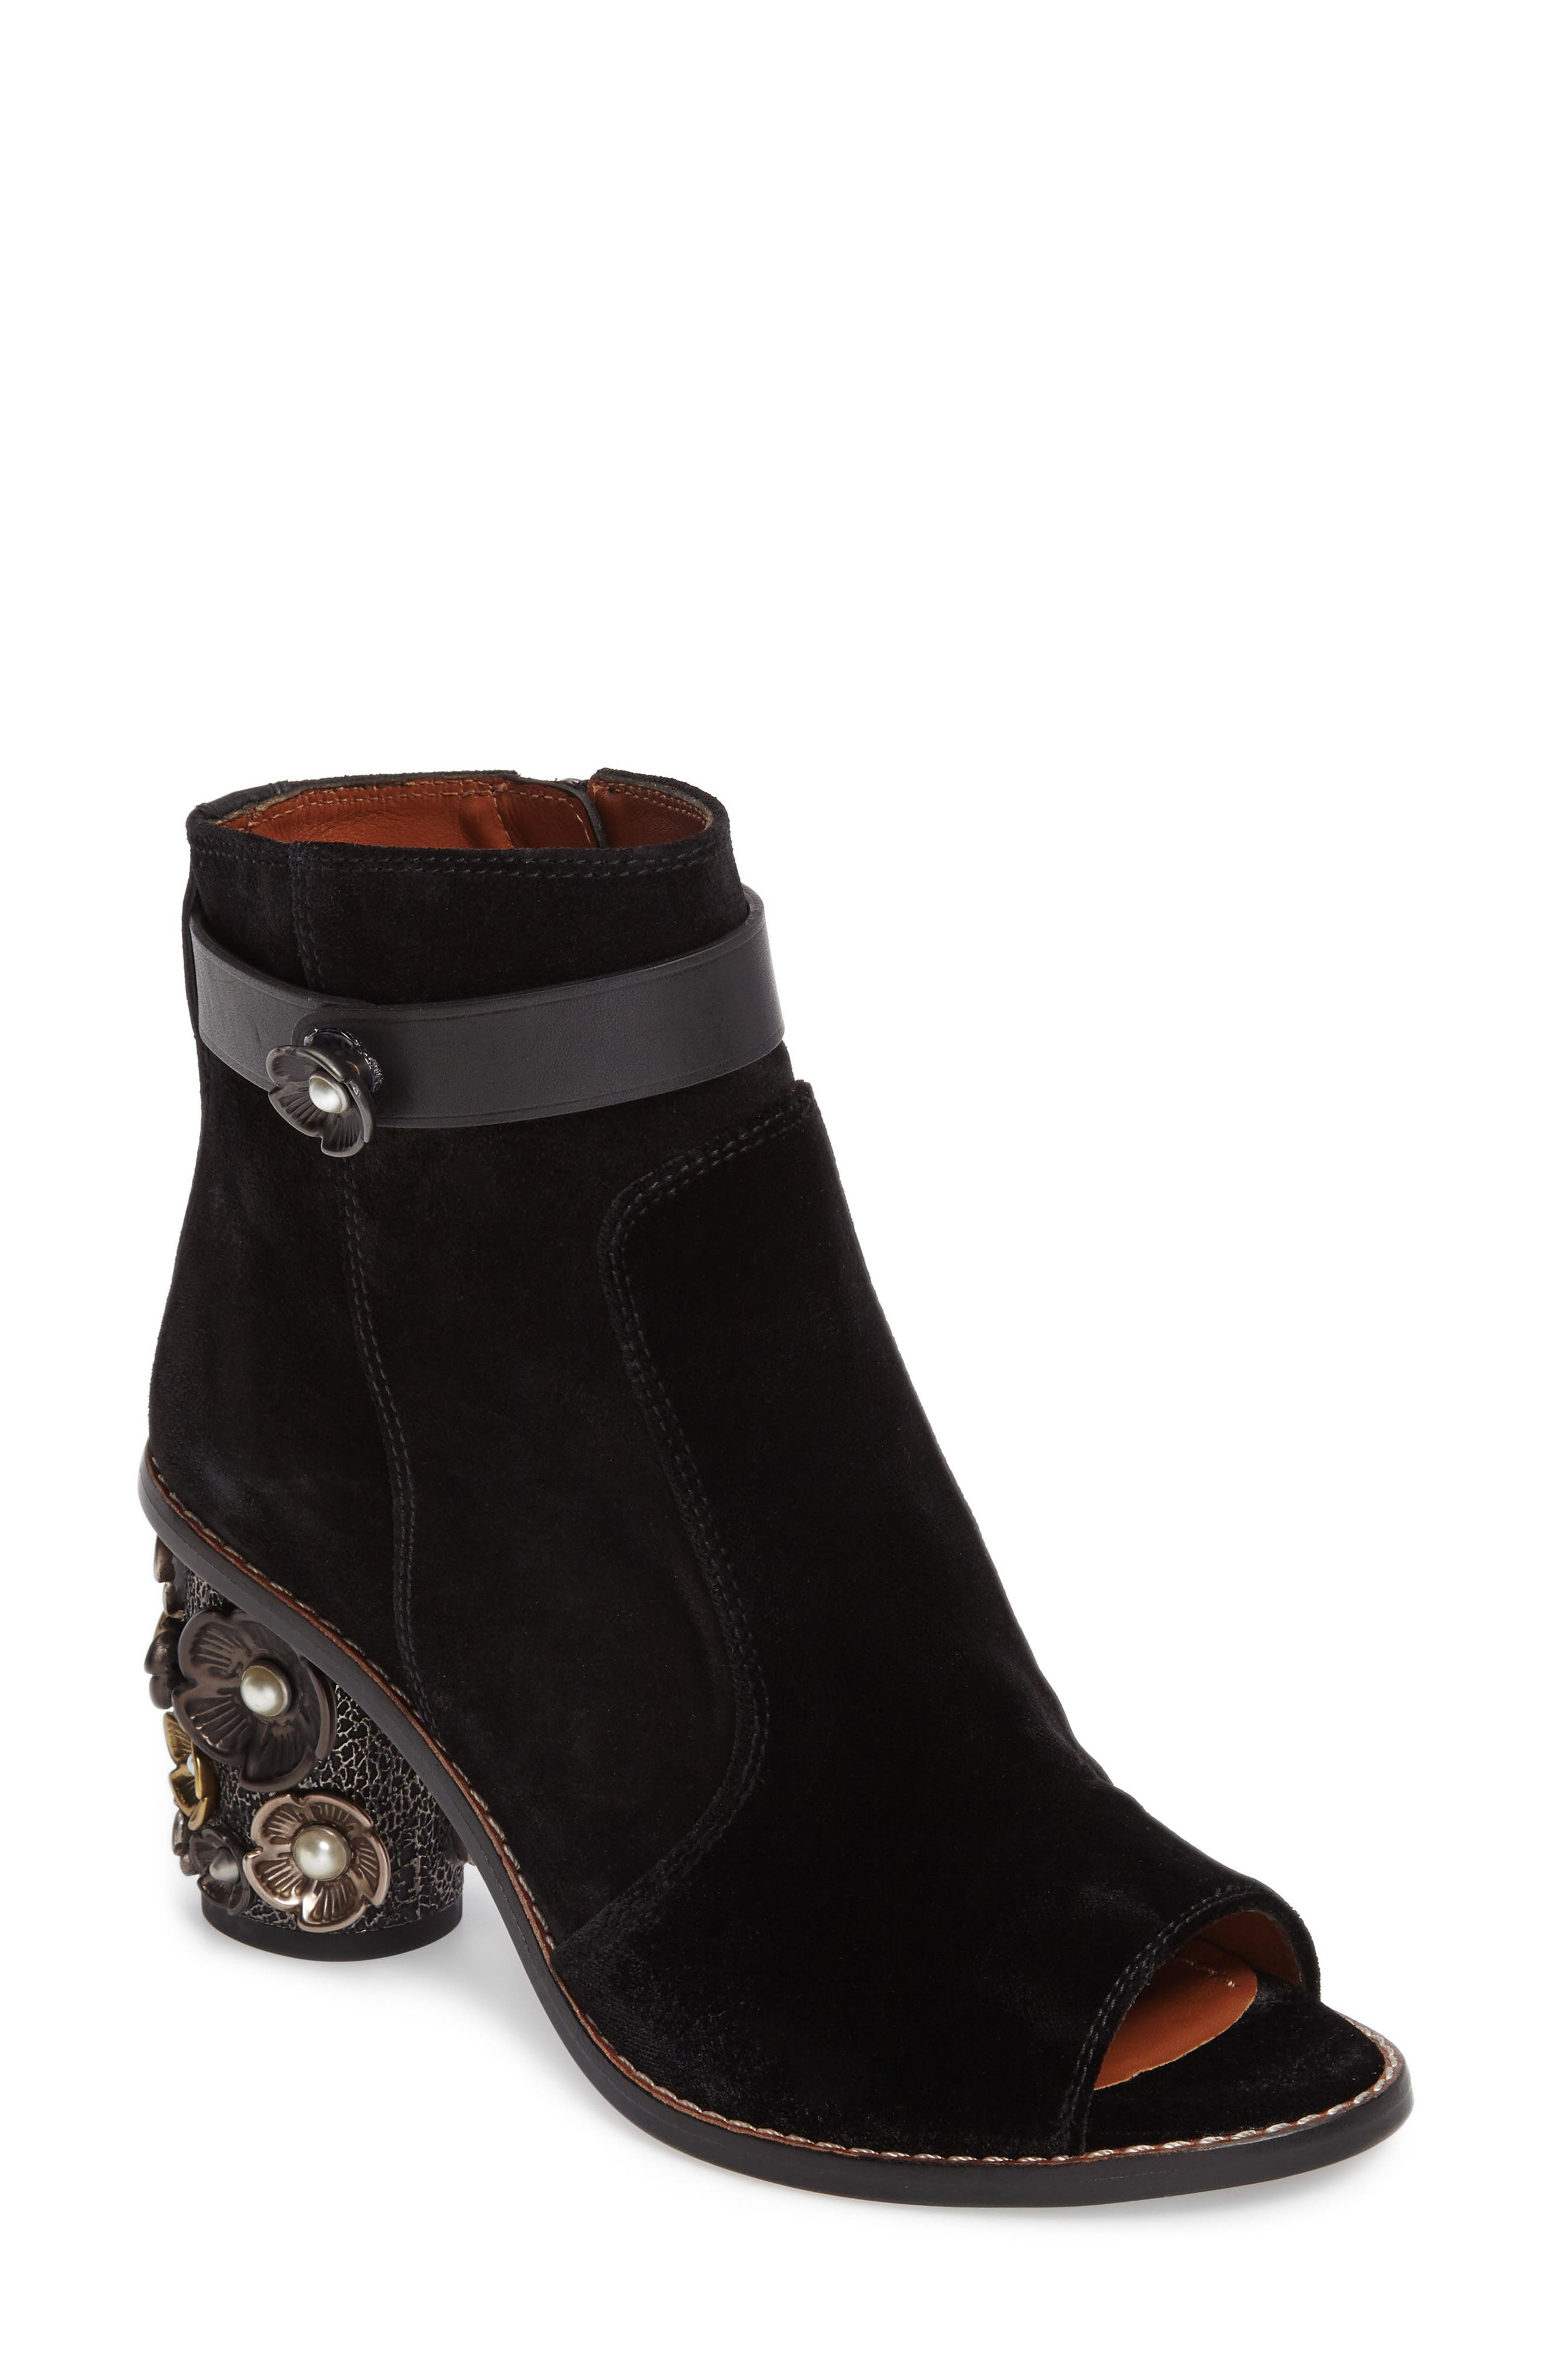 COACH Floral Embellished Open Toe Bootie (Women)